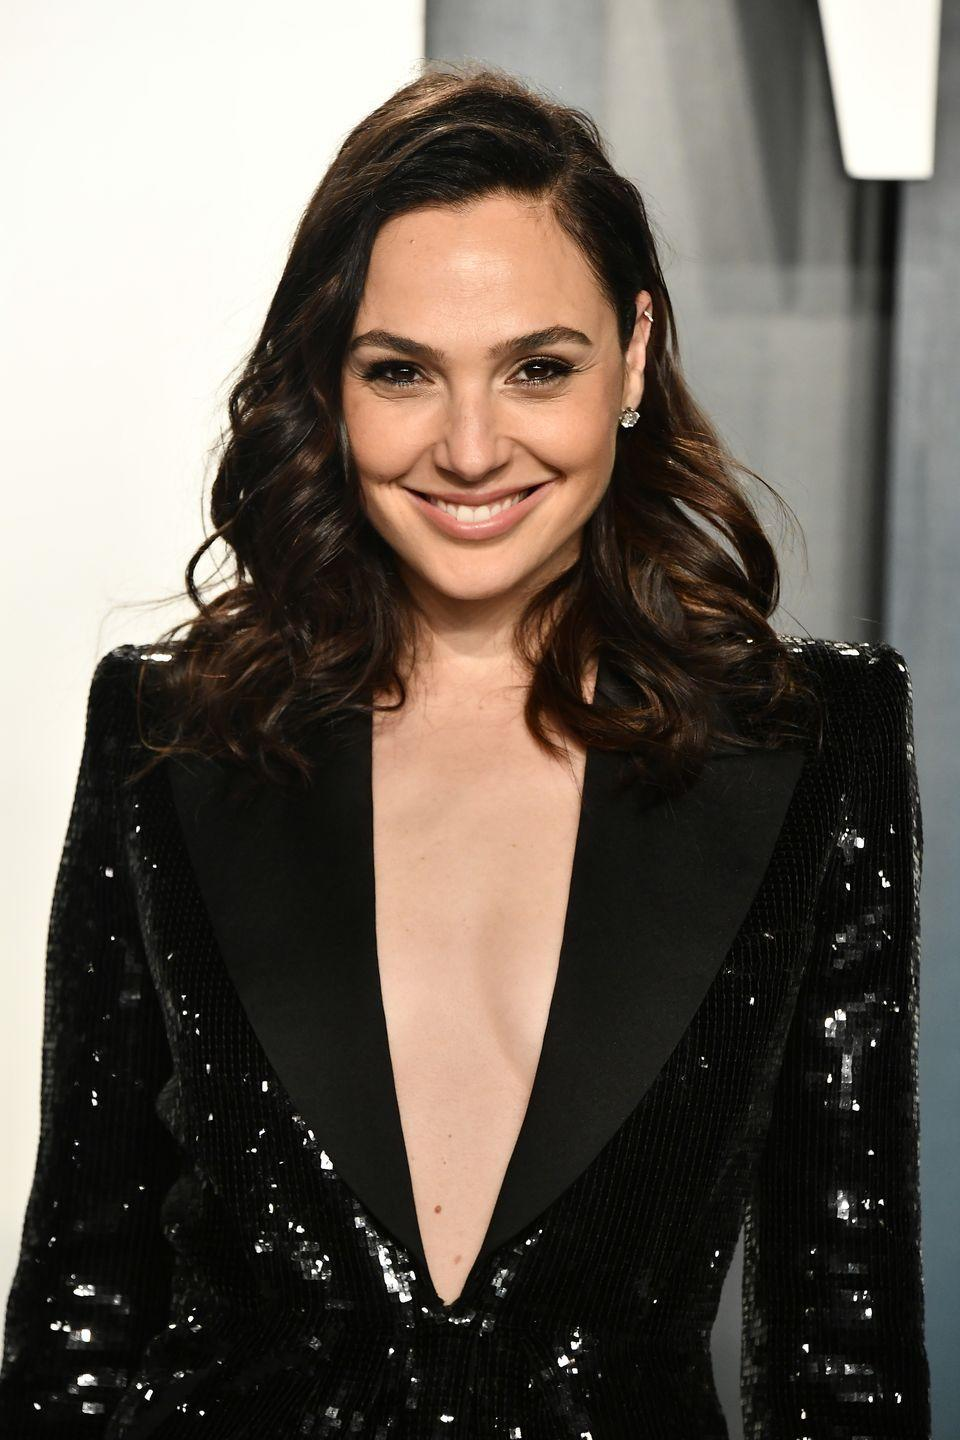 <p>With a star-studded cast—including Jon Hamm, Isla Fisher, and Zach Galifianakis—Gal Gadot wasn't the only celebrity to sign up for this box office stinker. </p>